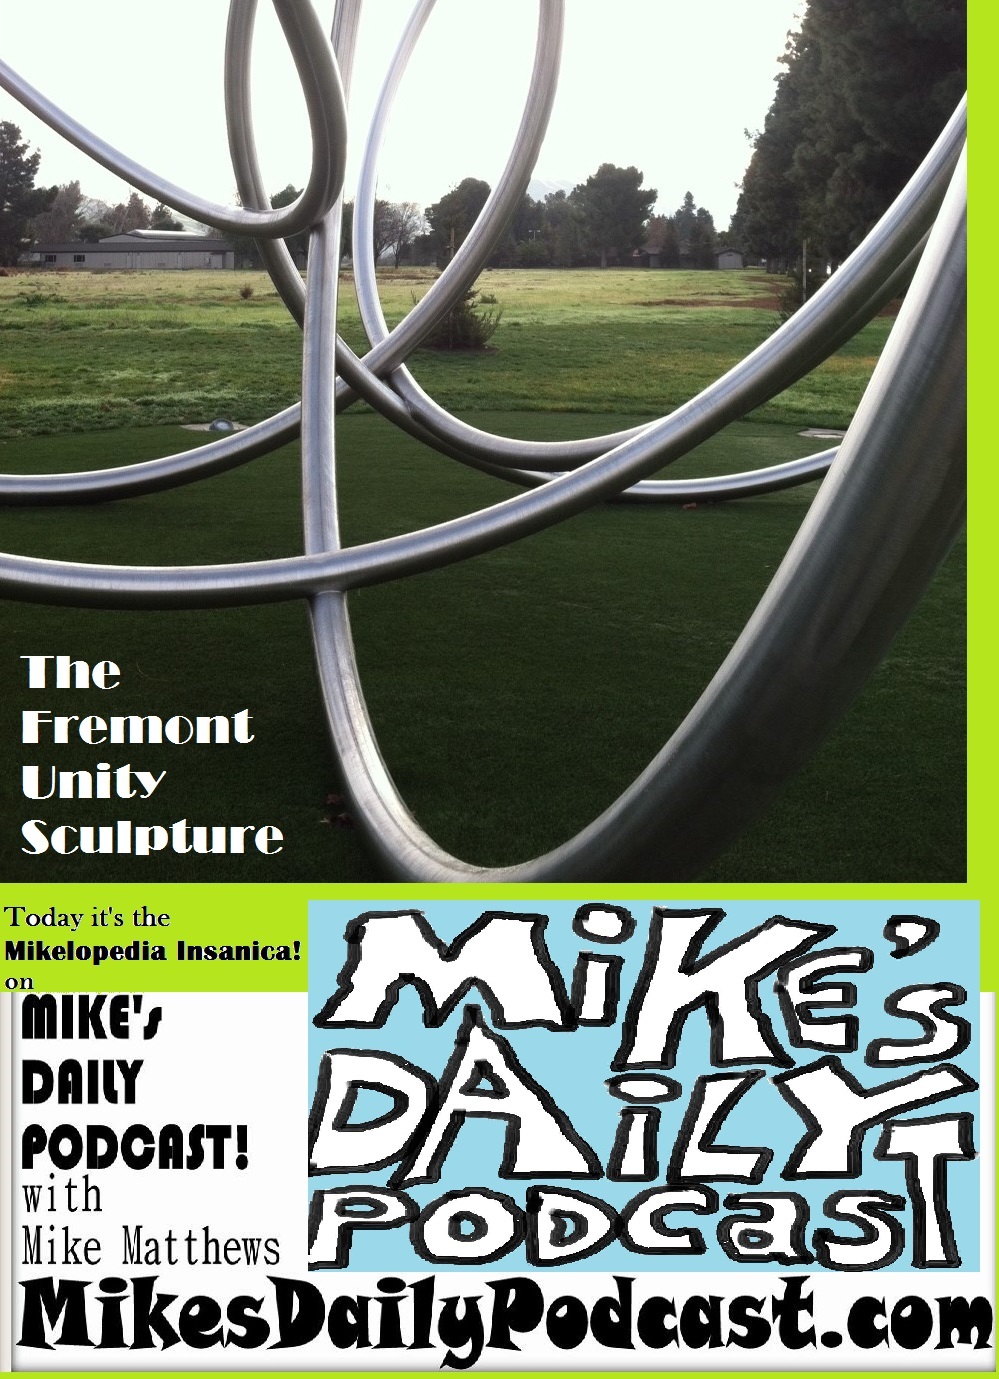 MIKEs DAILY PODCAST 1007 Fremont Unity Sculpture